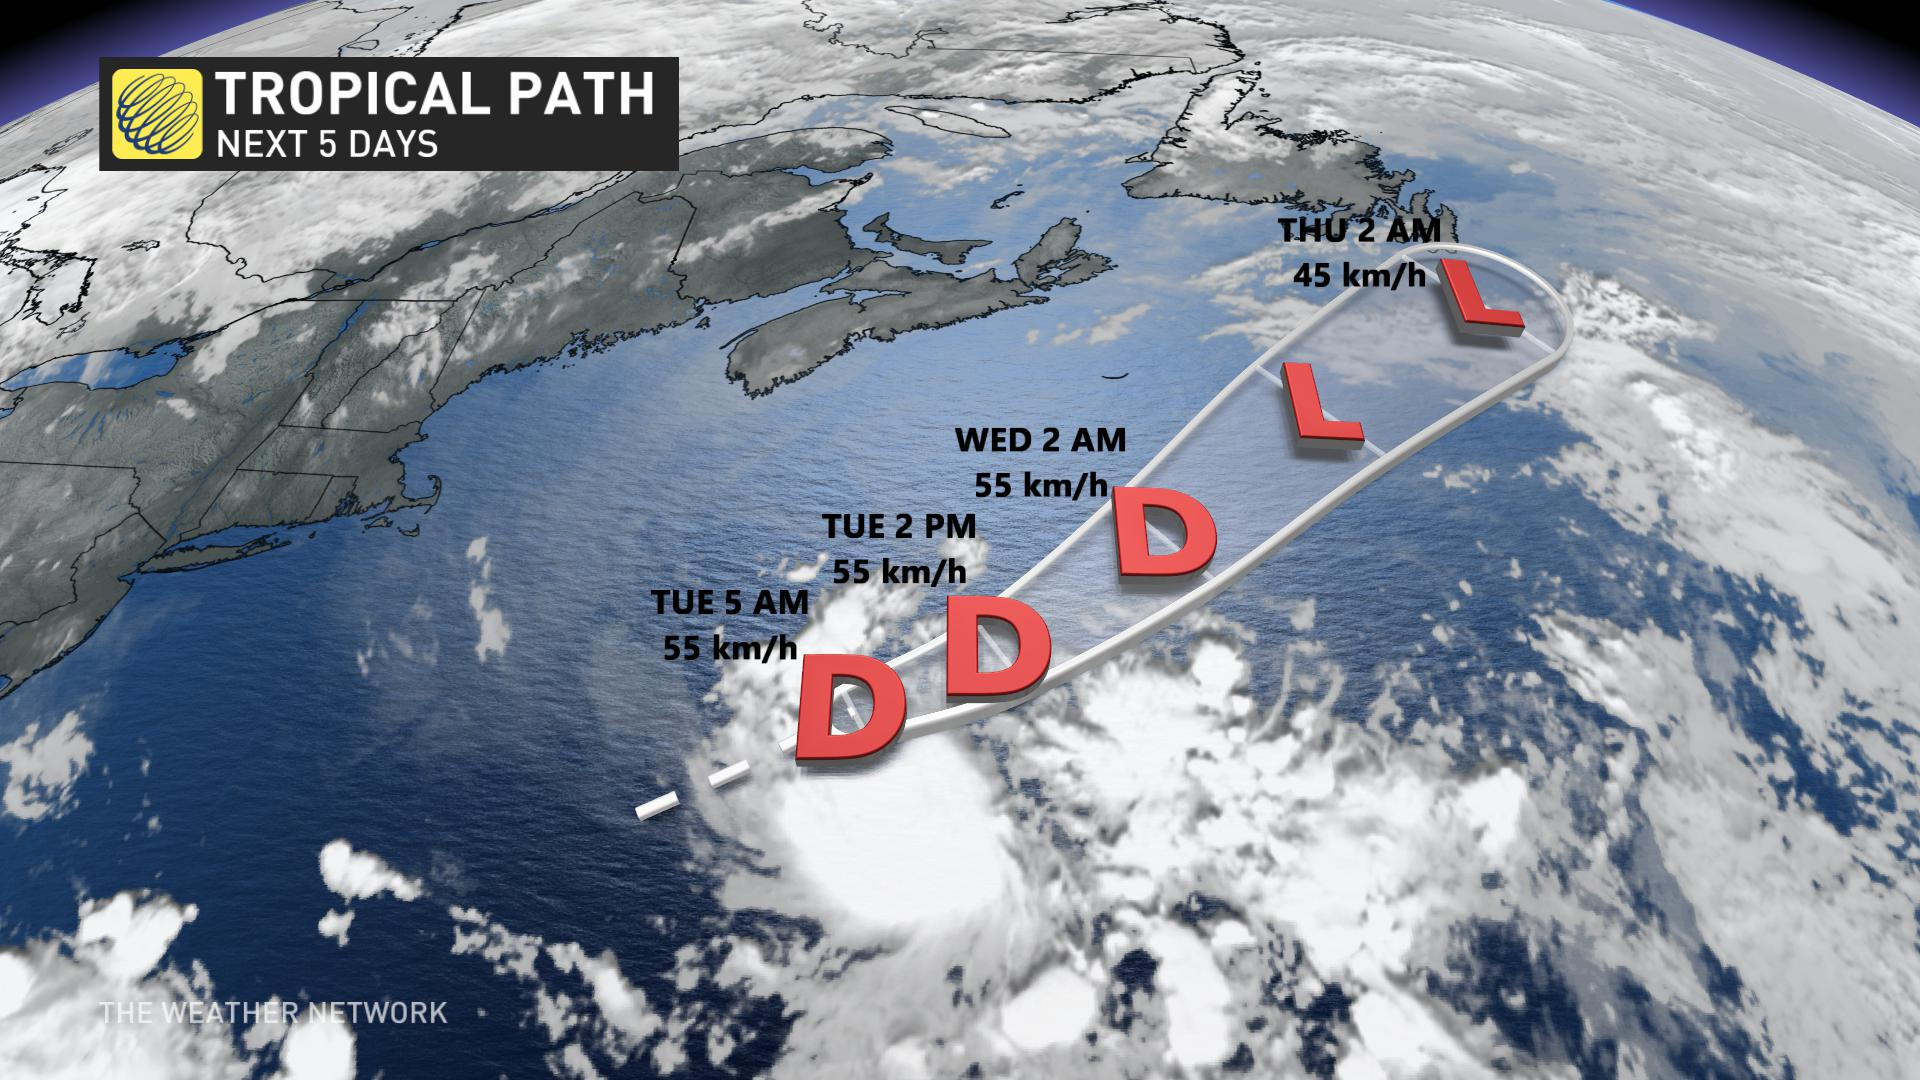 Tropical storm Dolly forms over Atlantic, but expected to remain offshore